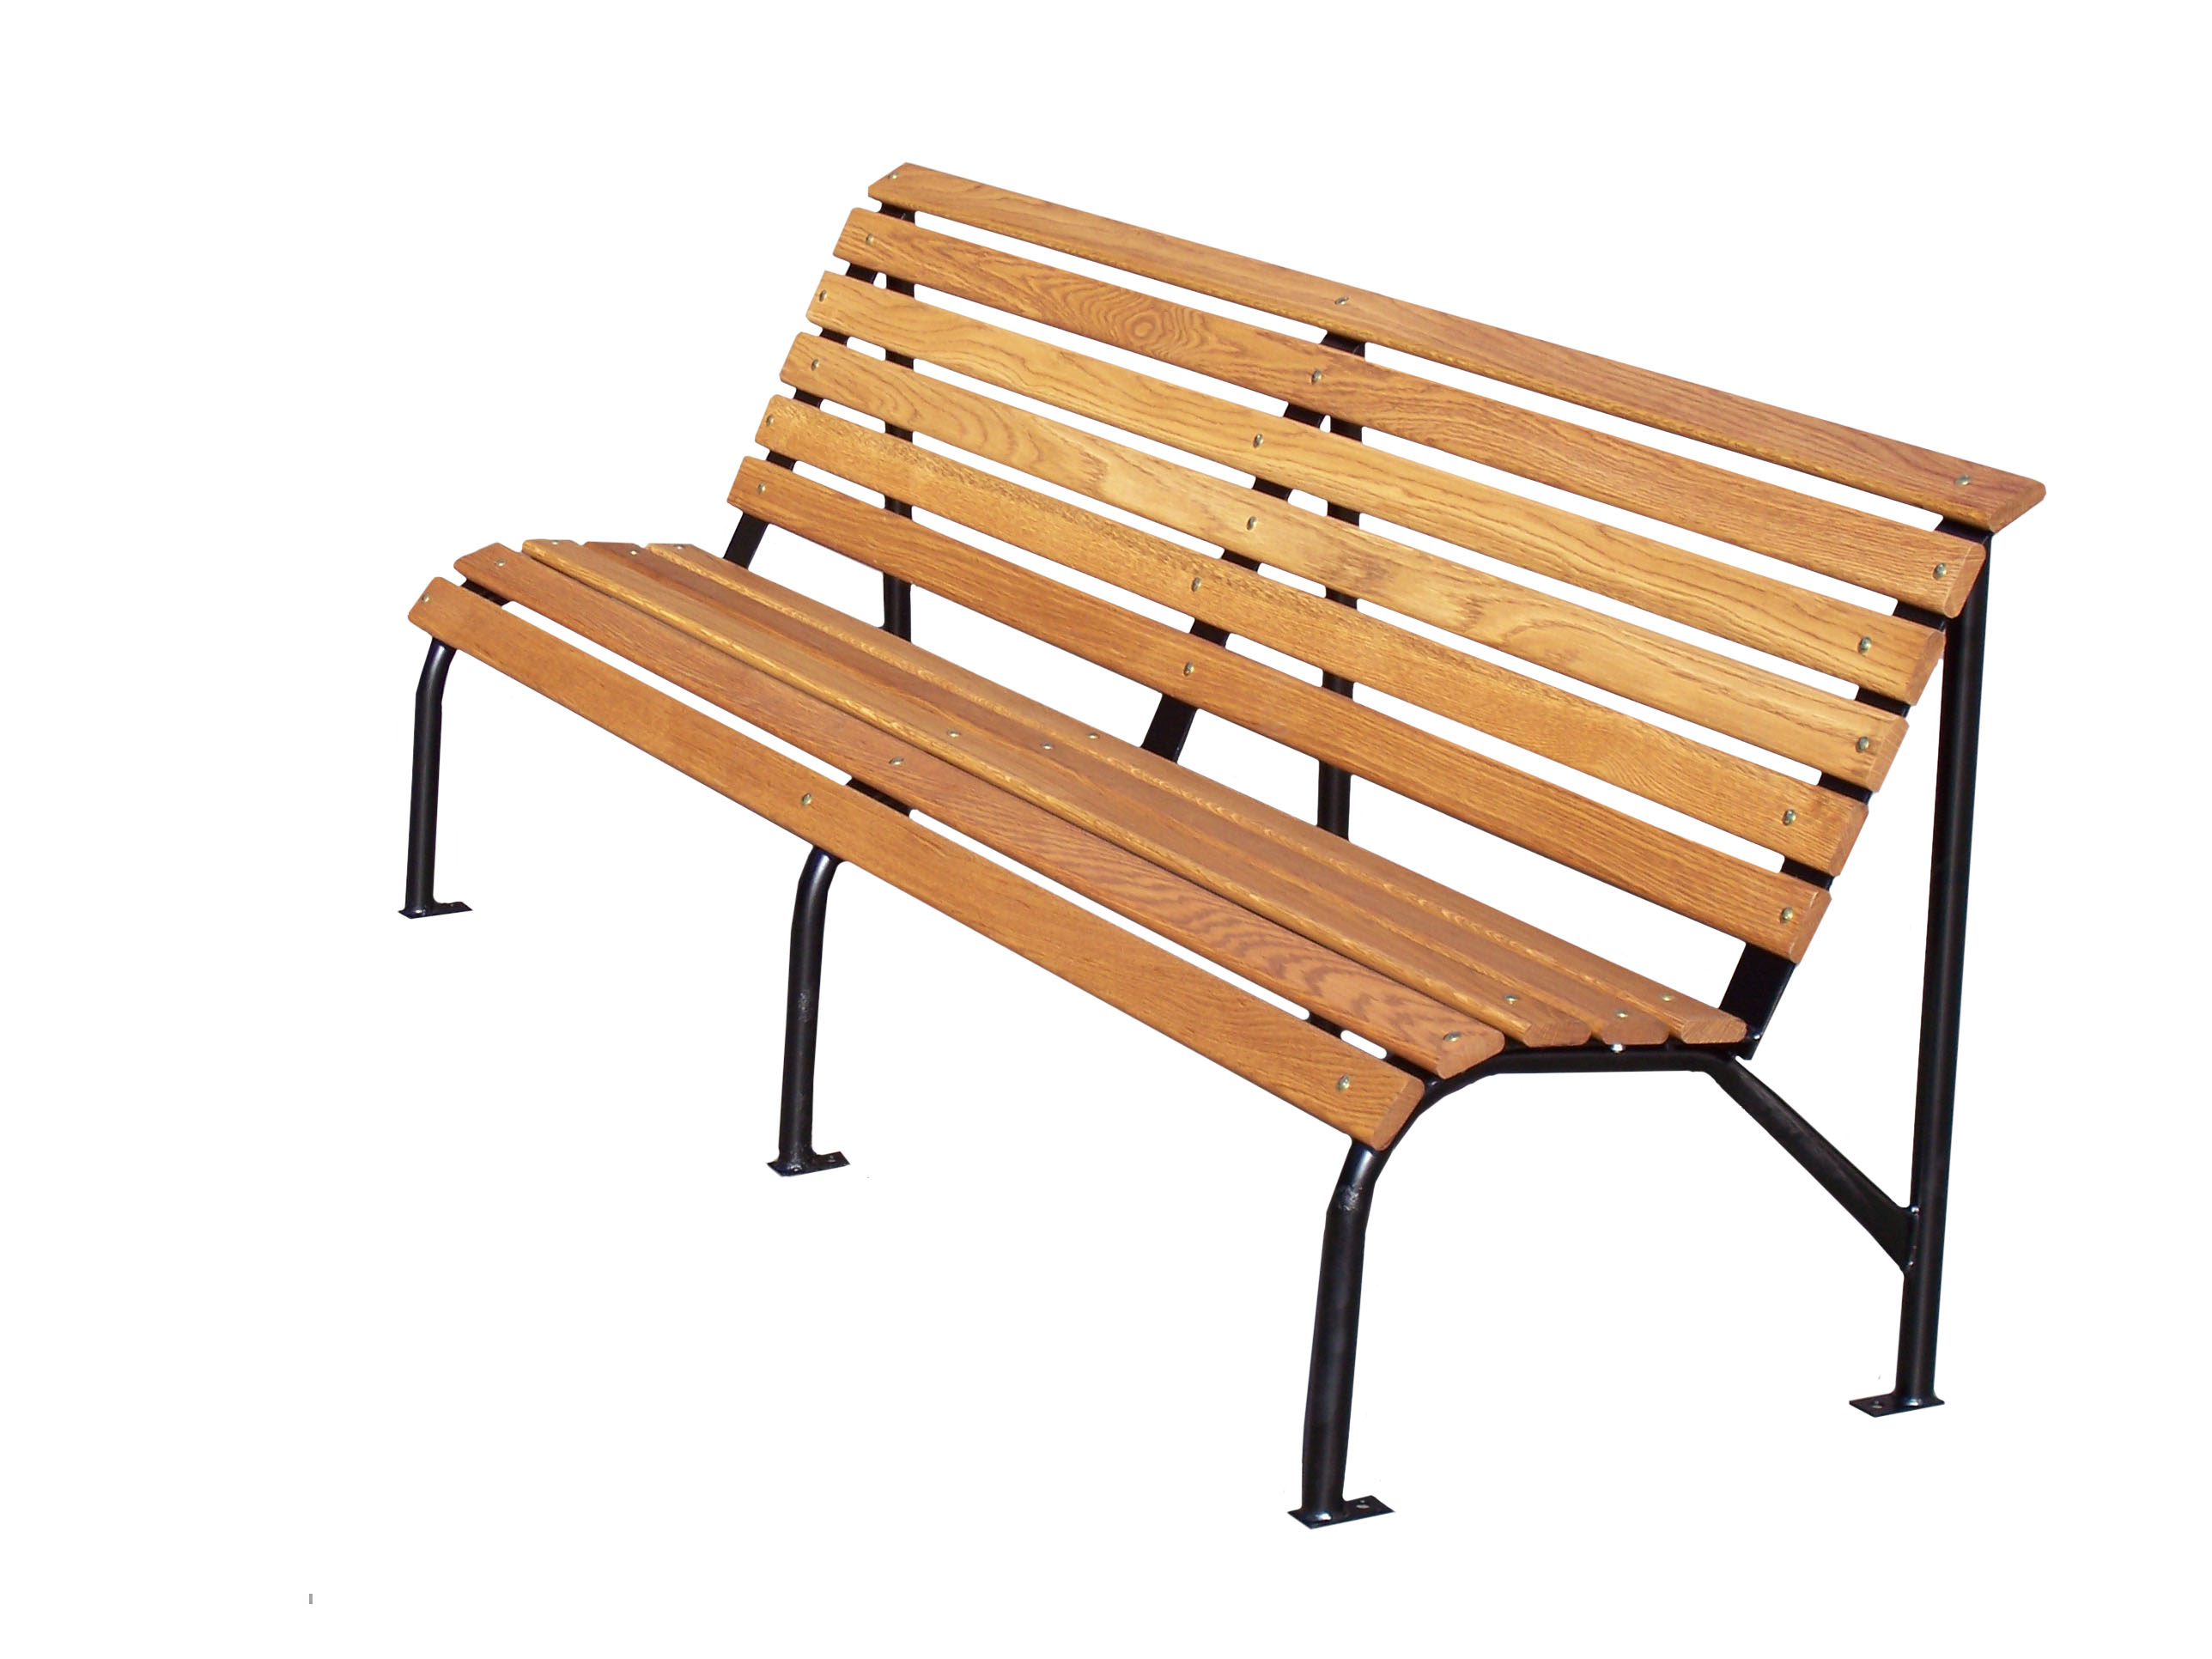 Marvelous photograph of White Oak Commercial Park Bench with #AB6F20 color and 2576x1932 pixels